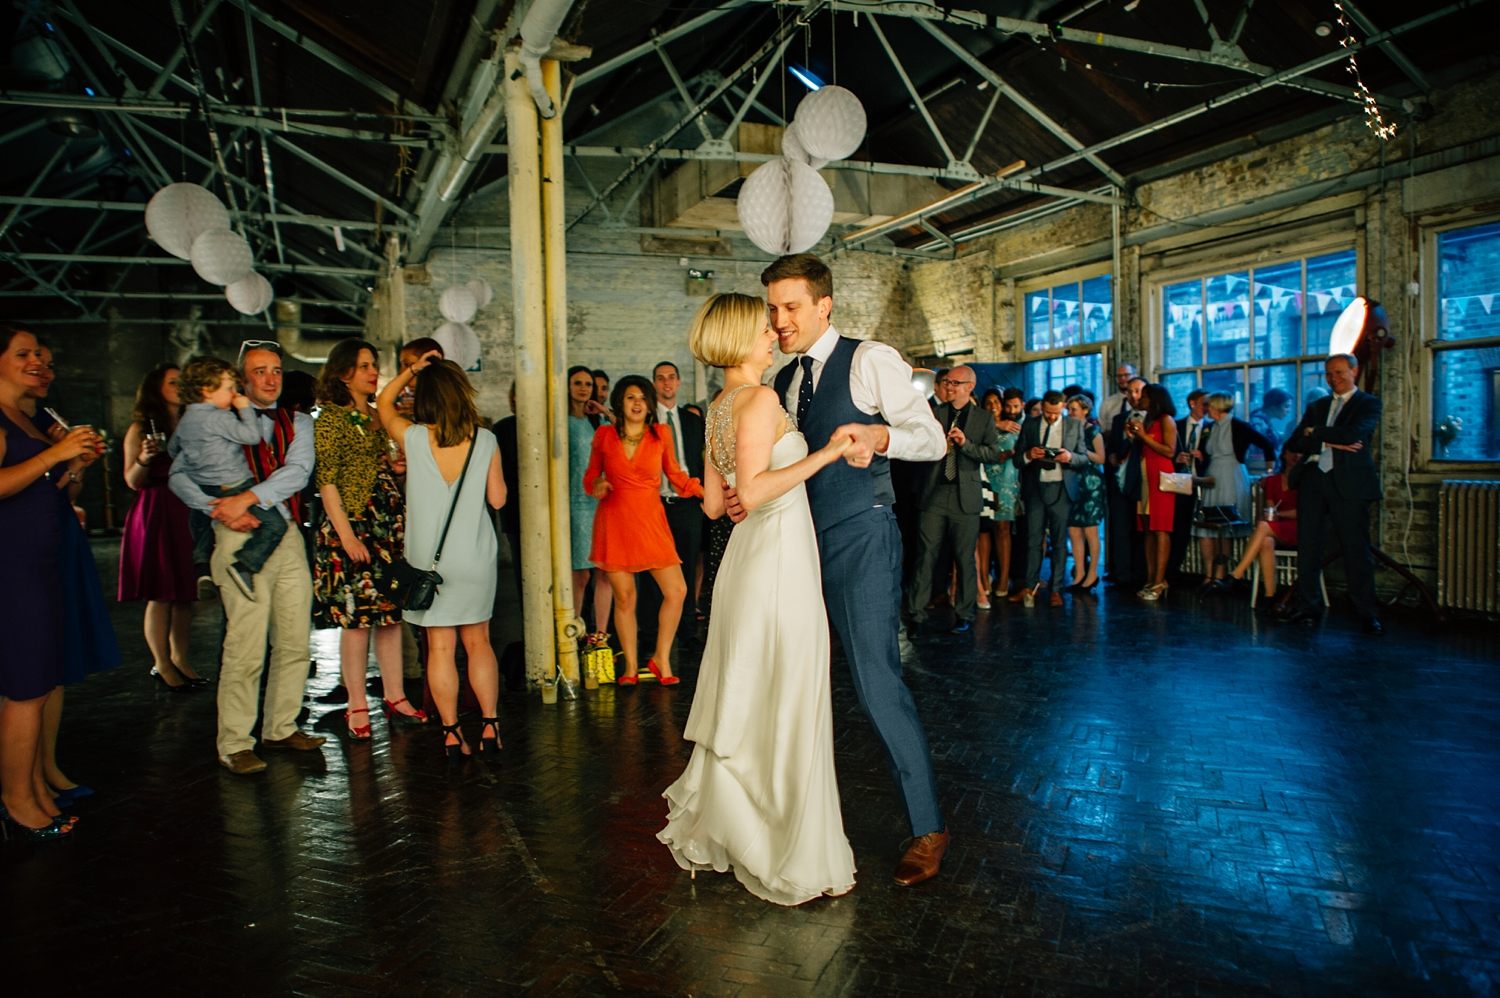 0216-lisa-devine-alternative-wedding-photography-london-hackney-dalston-london-photography-townhall-hotel.JPG